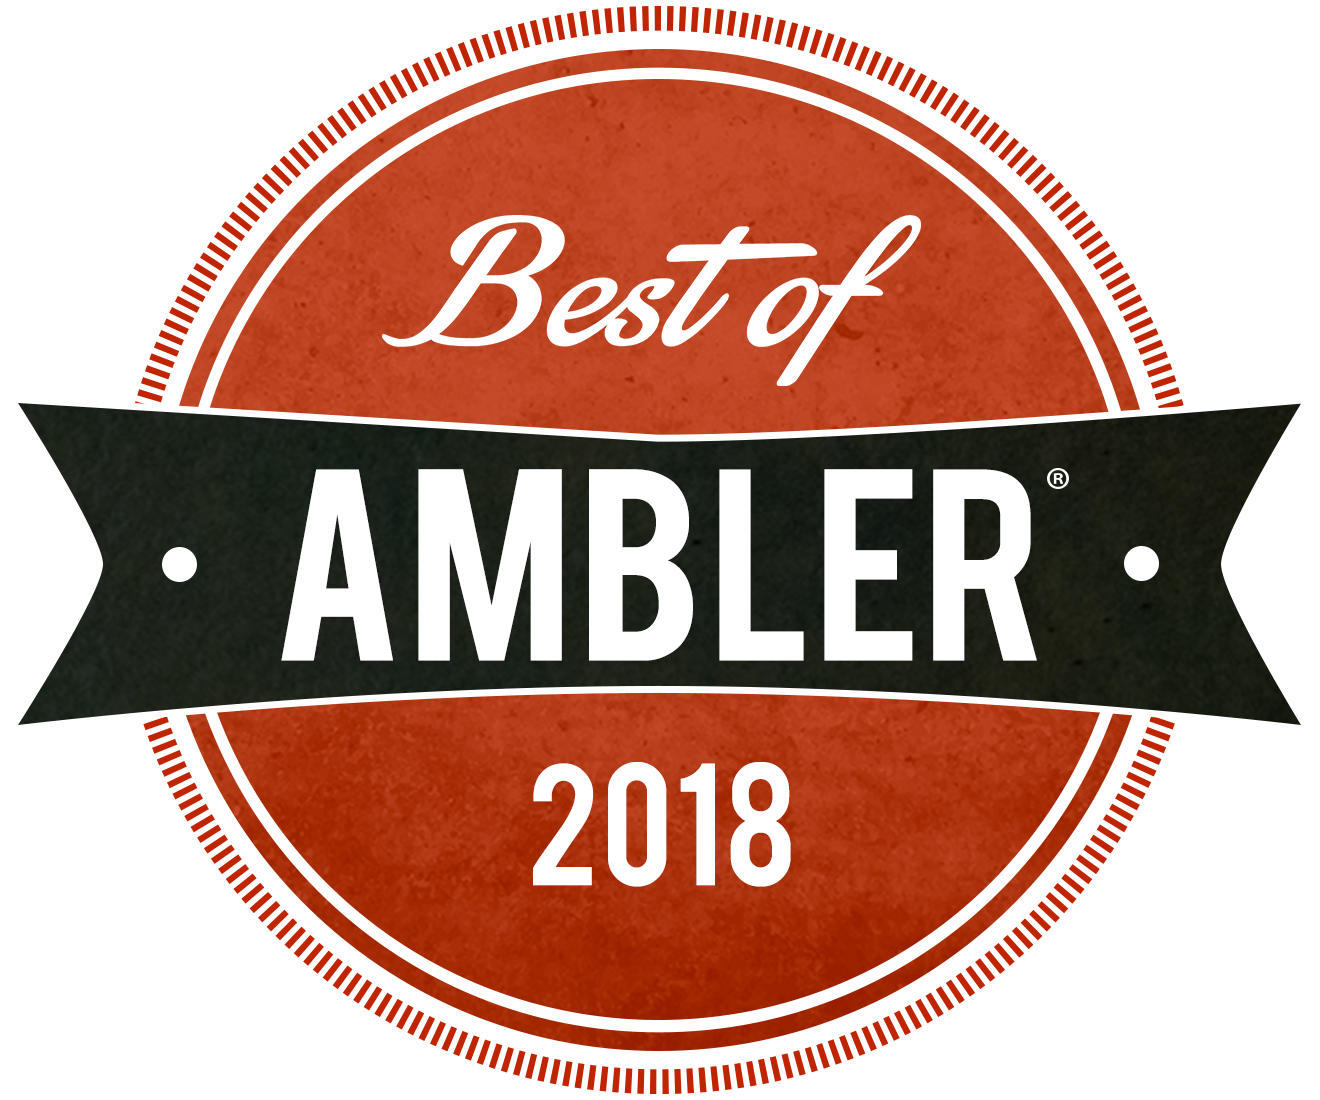 Best Of Ambler